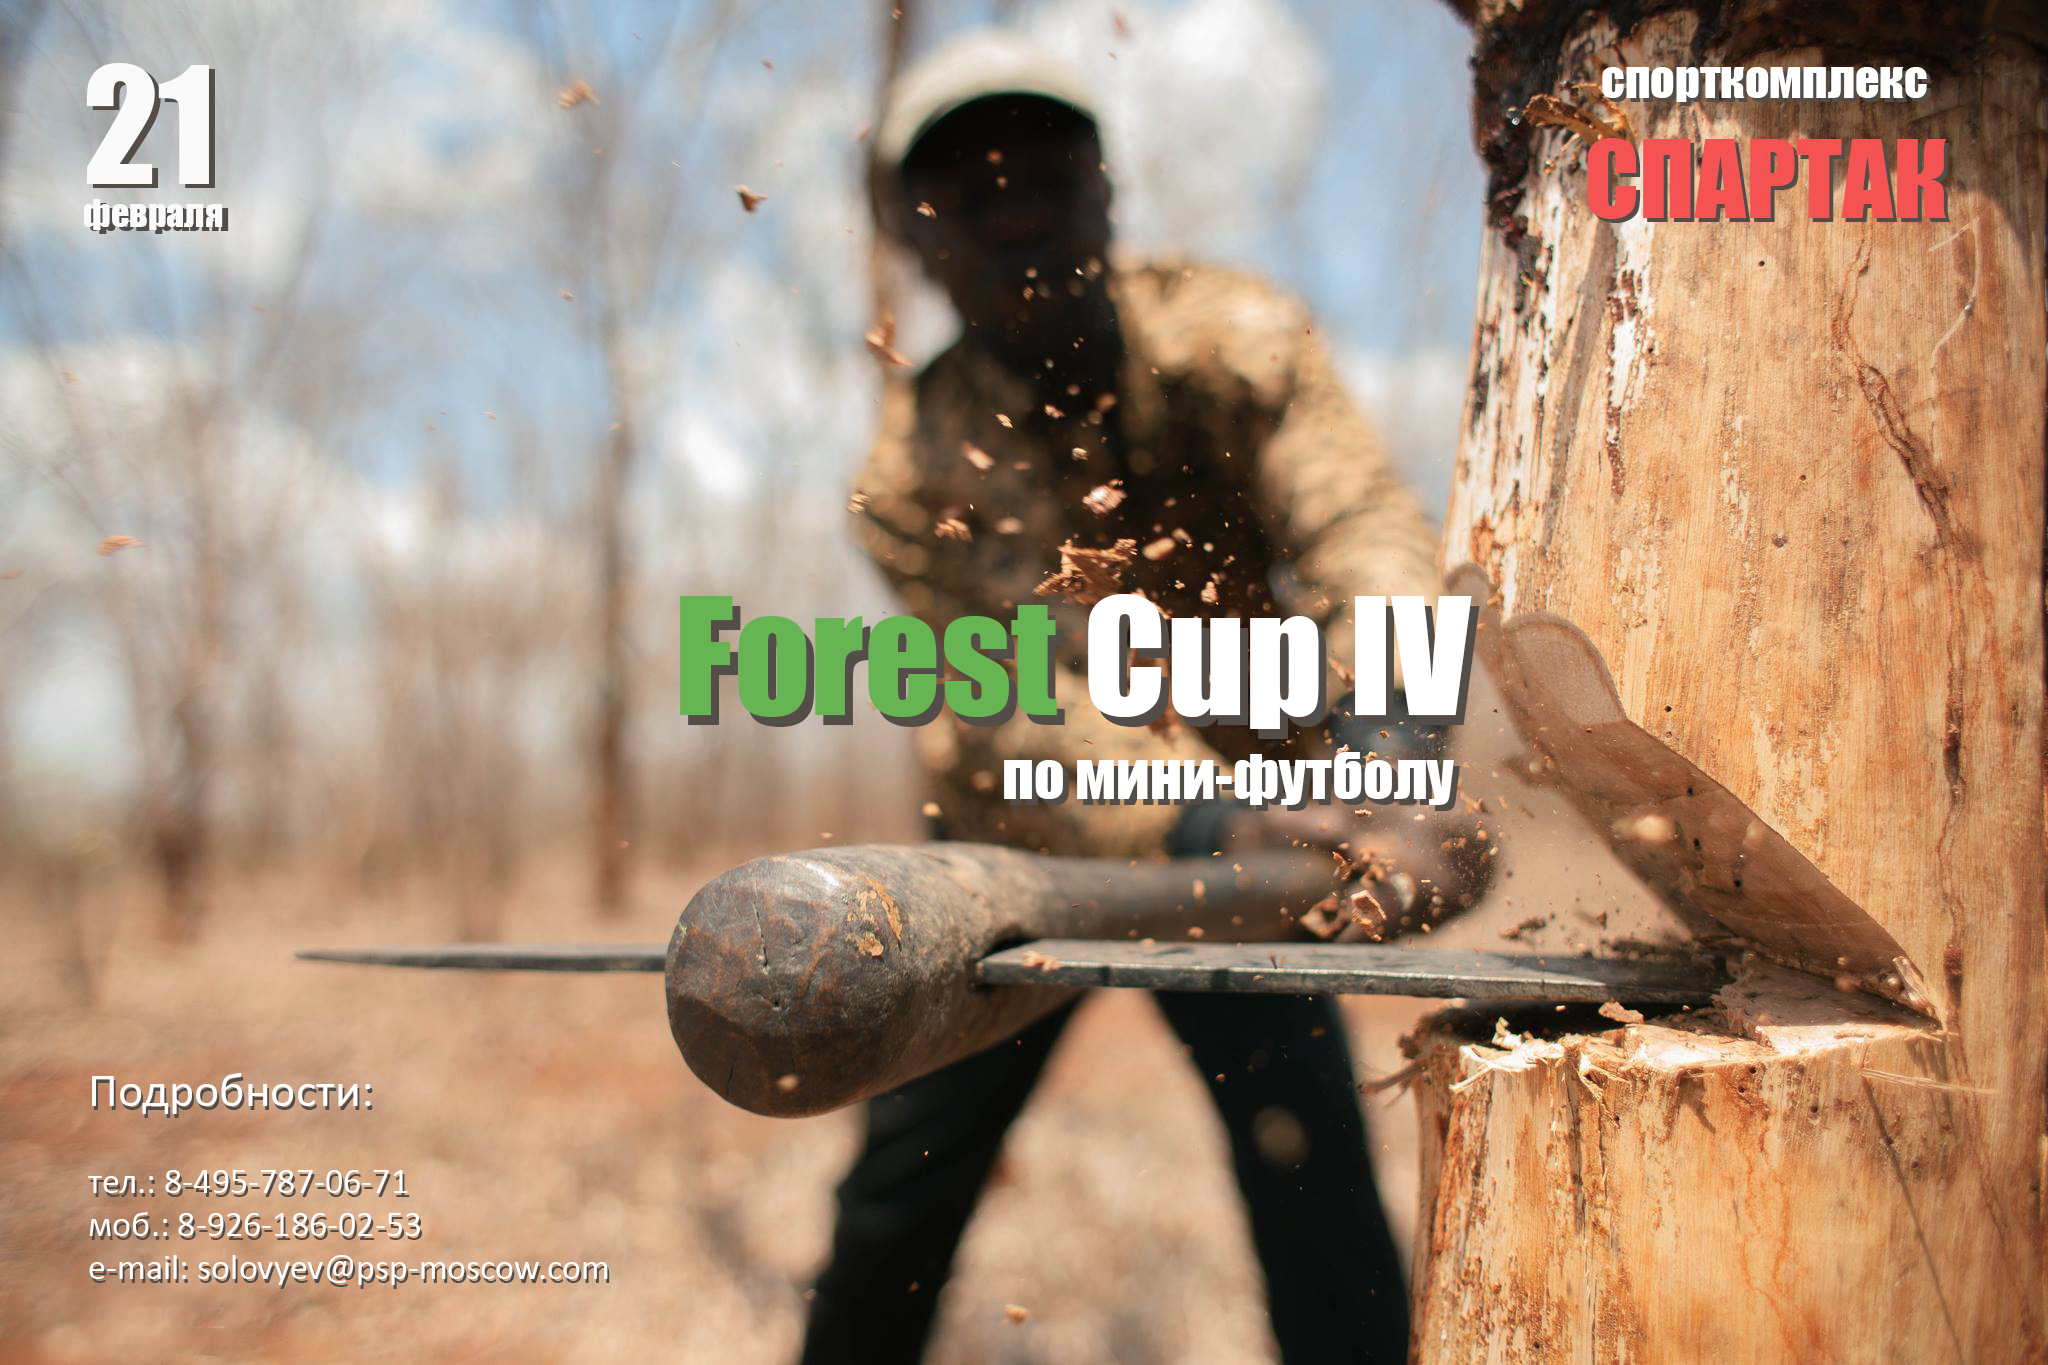 Forest cup IV